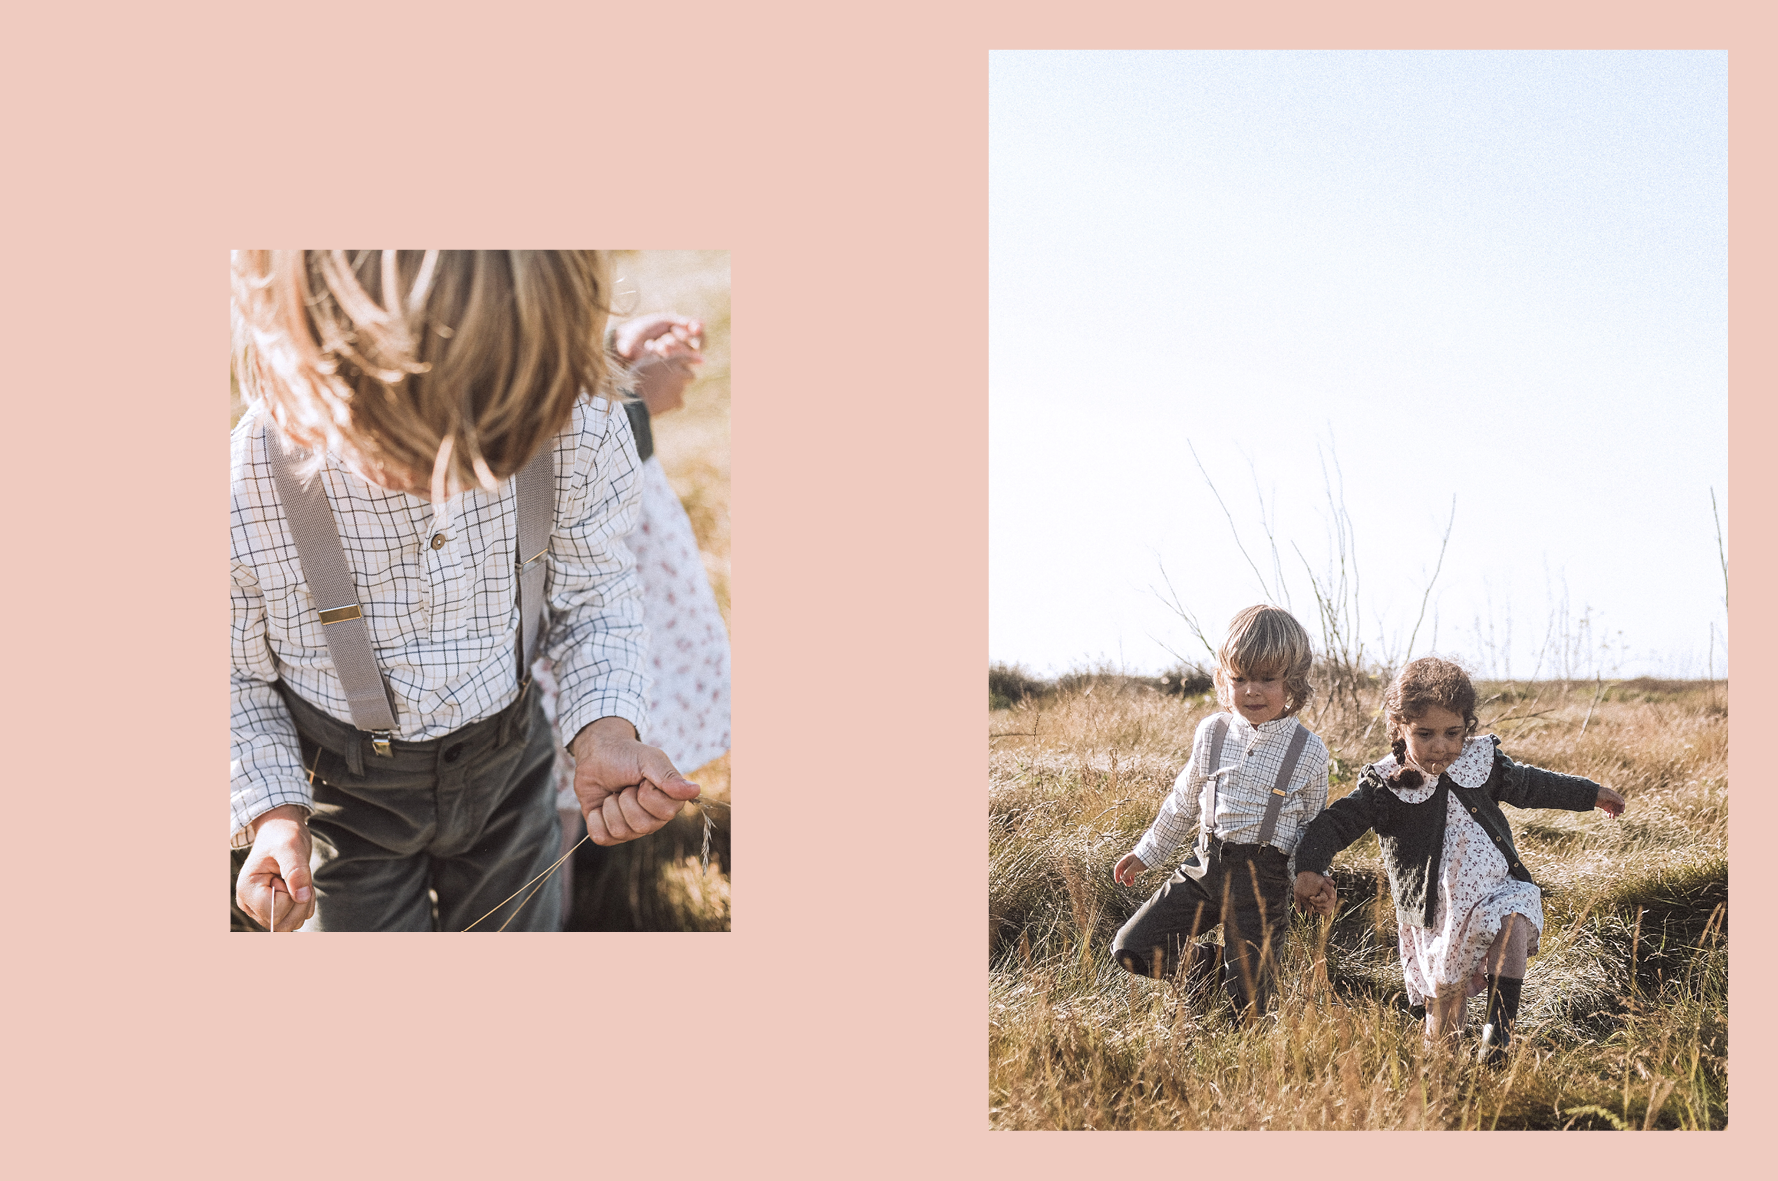 aw21-grace-baby-and-child-campaign-9